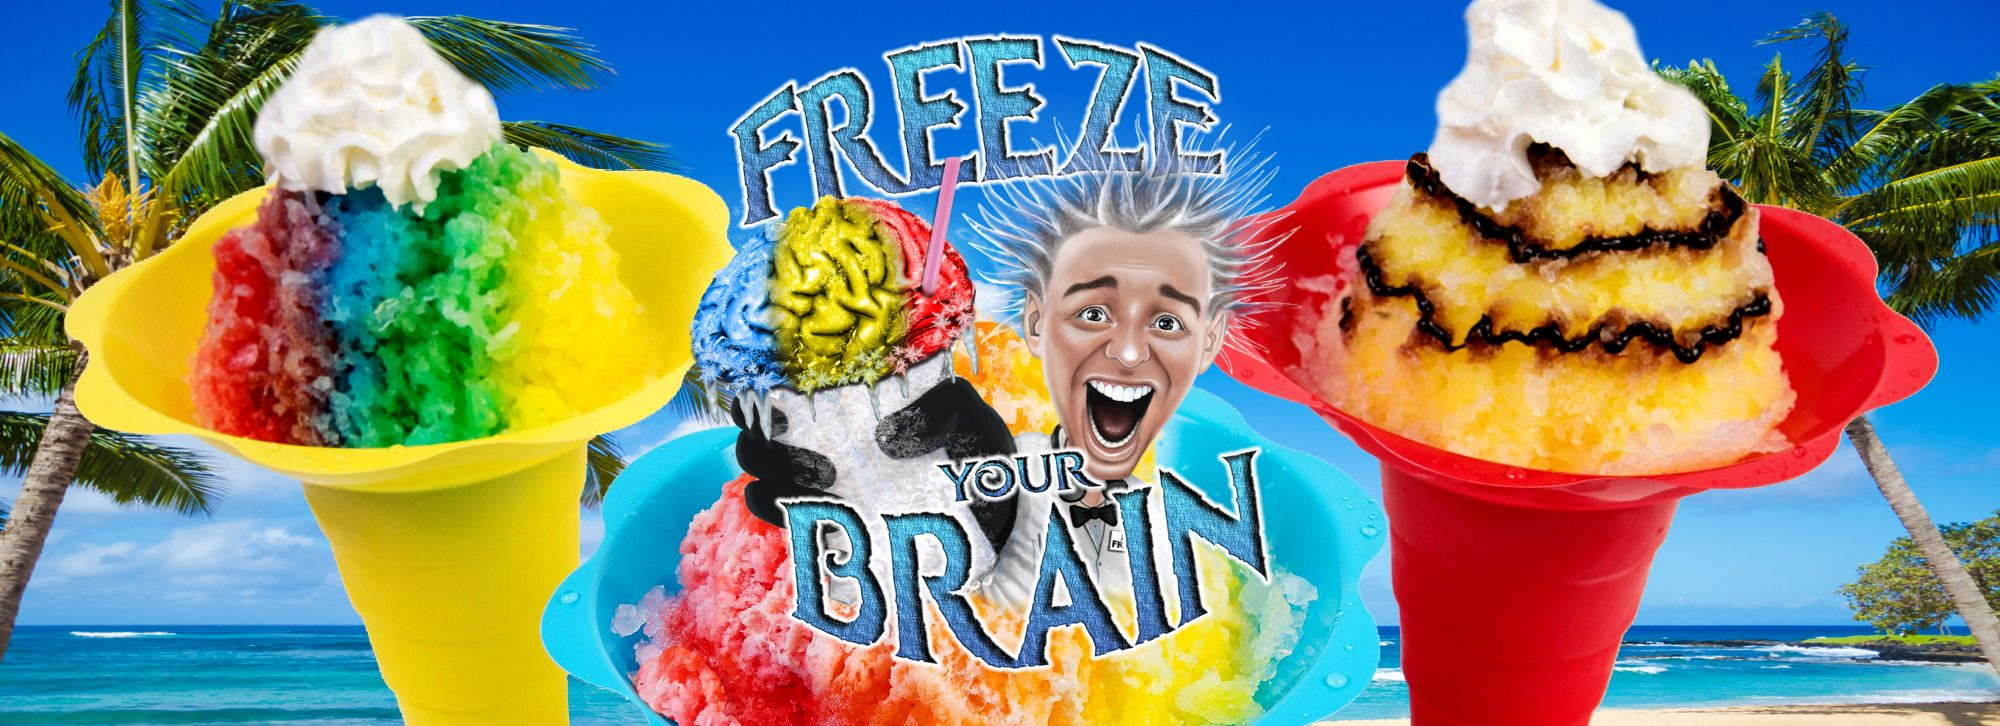 Welcome to Freeze Your Brain Shave Ice!